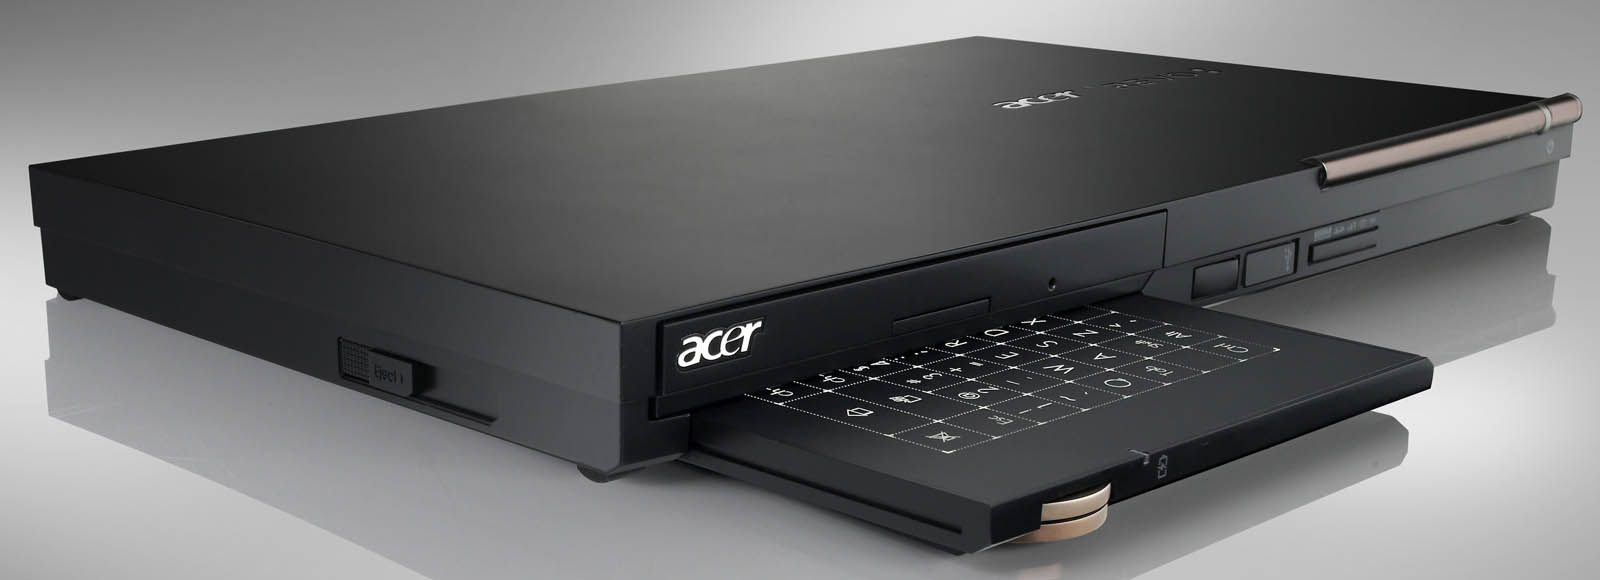 Acer Aspire TC-100 Liteon WLAN Windows 8 X64 Driver Download